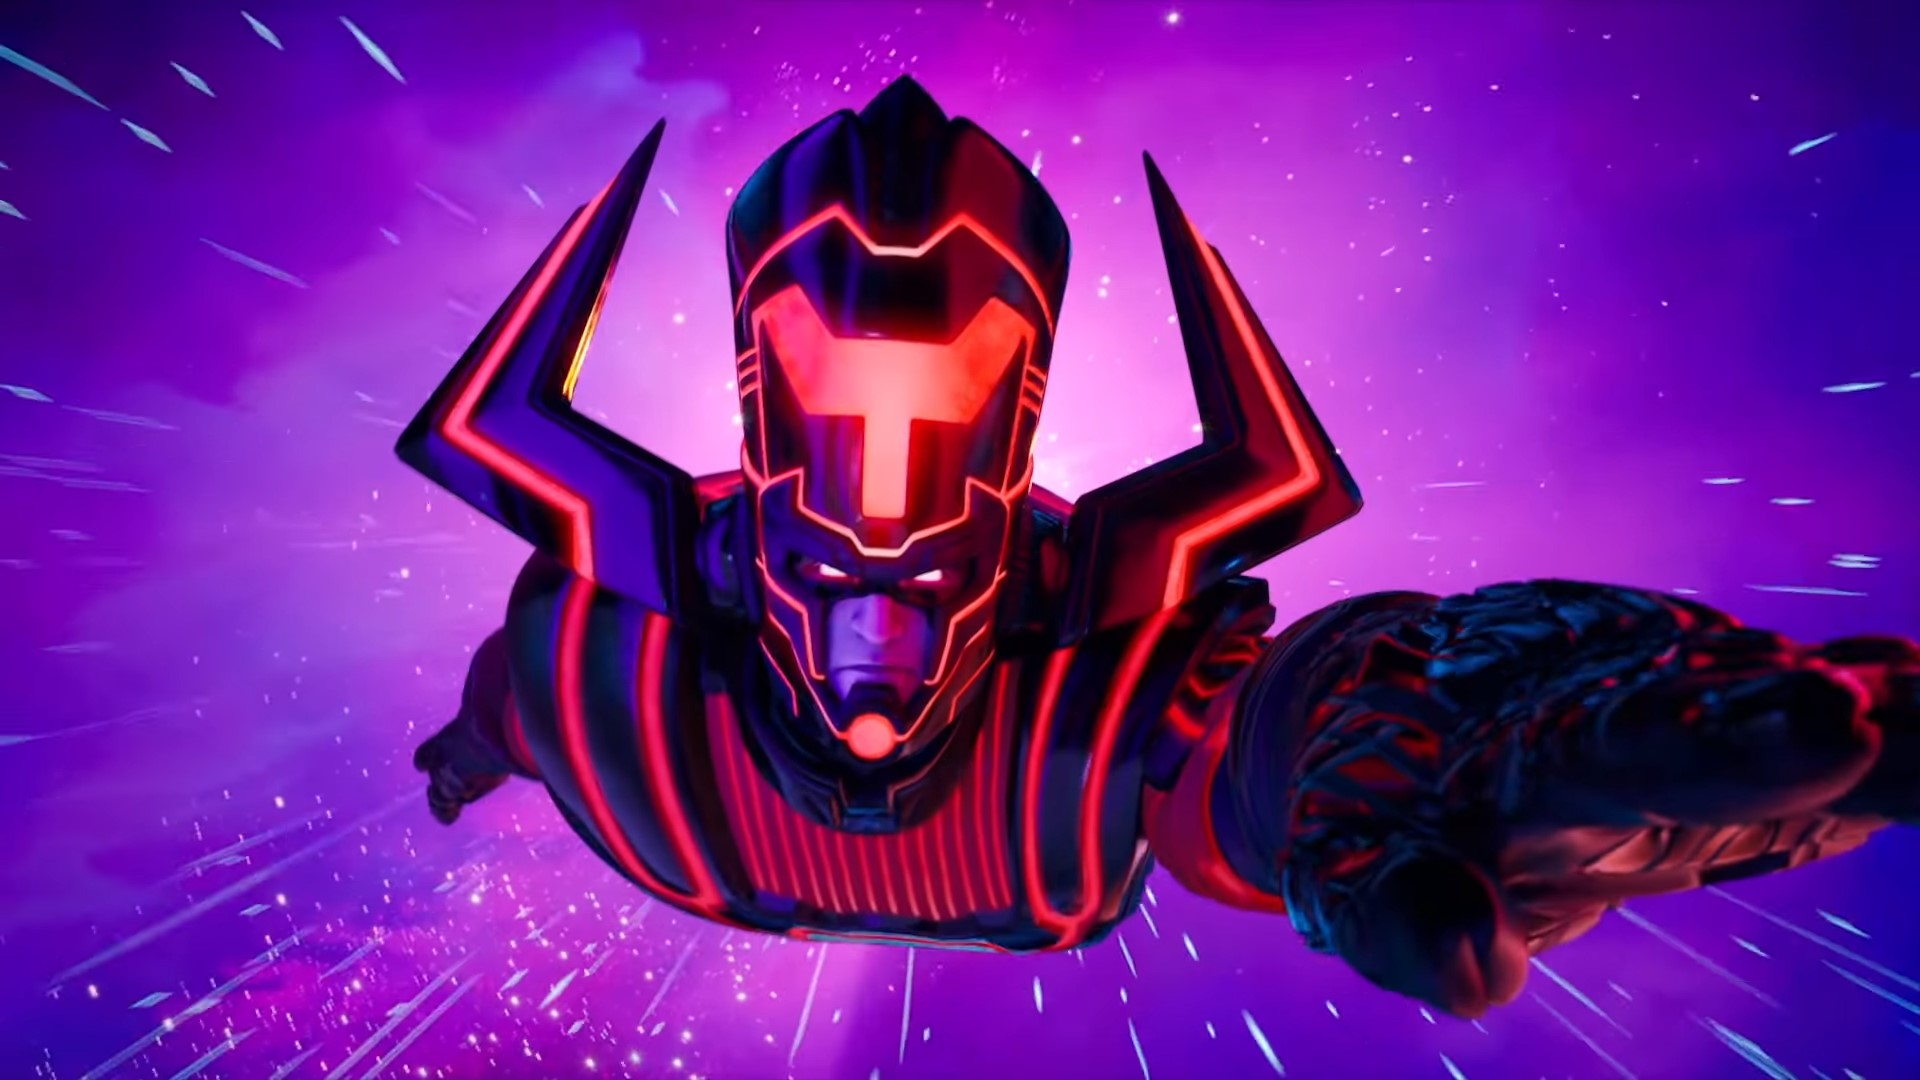 Galactus flying towards the screen in Fortnite